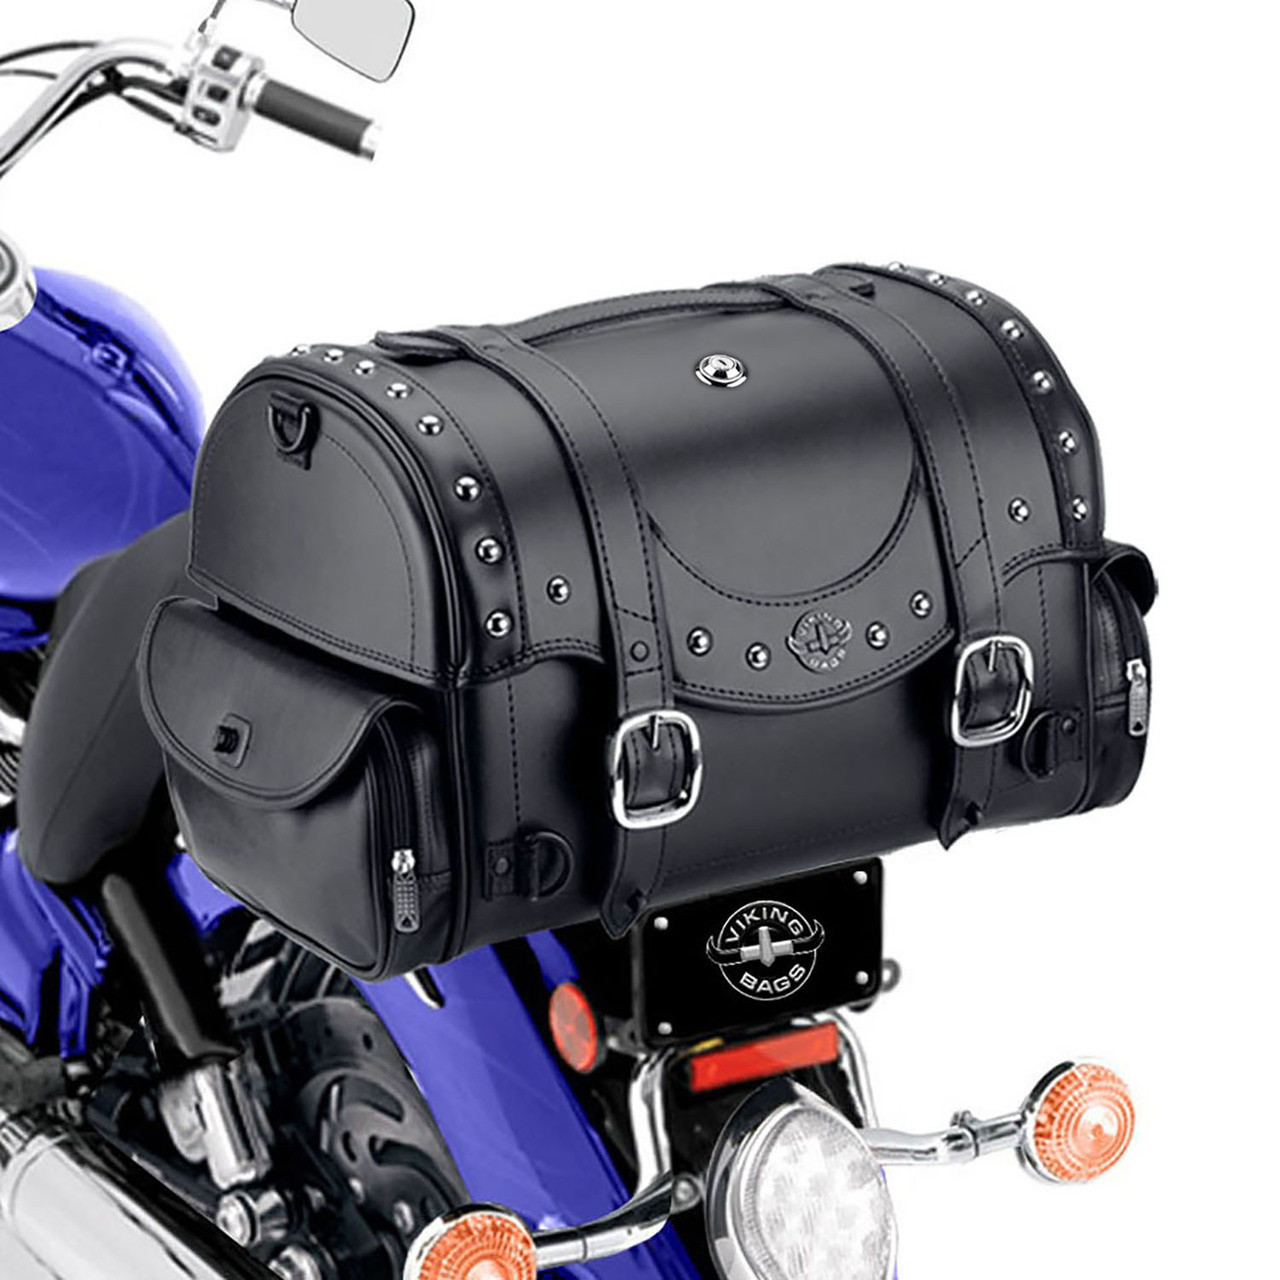 Viking Century Studded 2050 Cubic Inches Motorcycle Trunk Back on Bike View